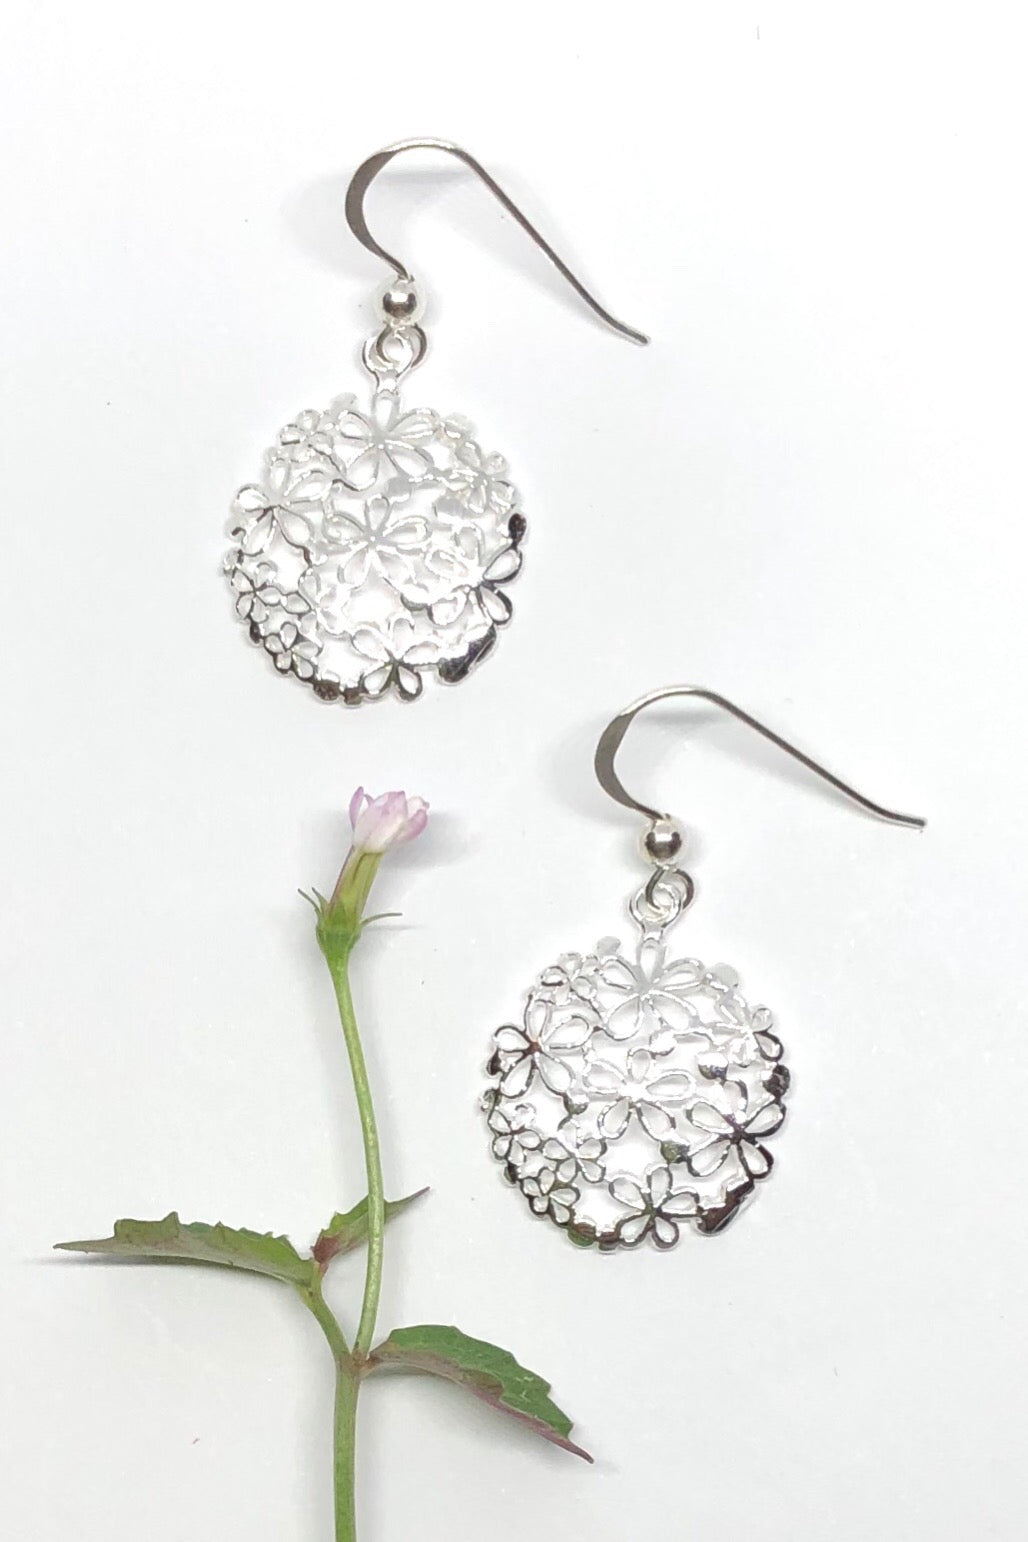 These pretty silver earrings will add some woodland magic to your jewellery collection.